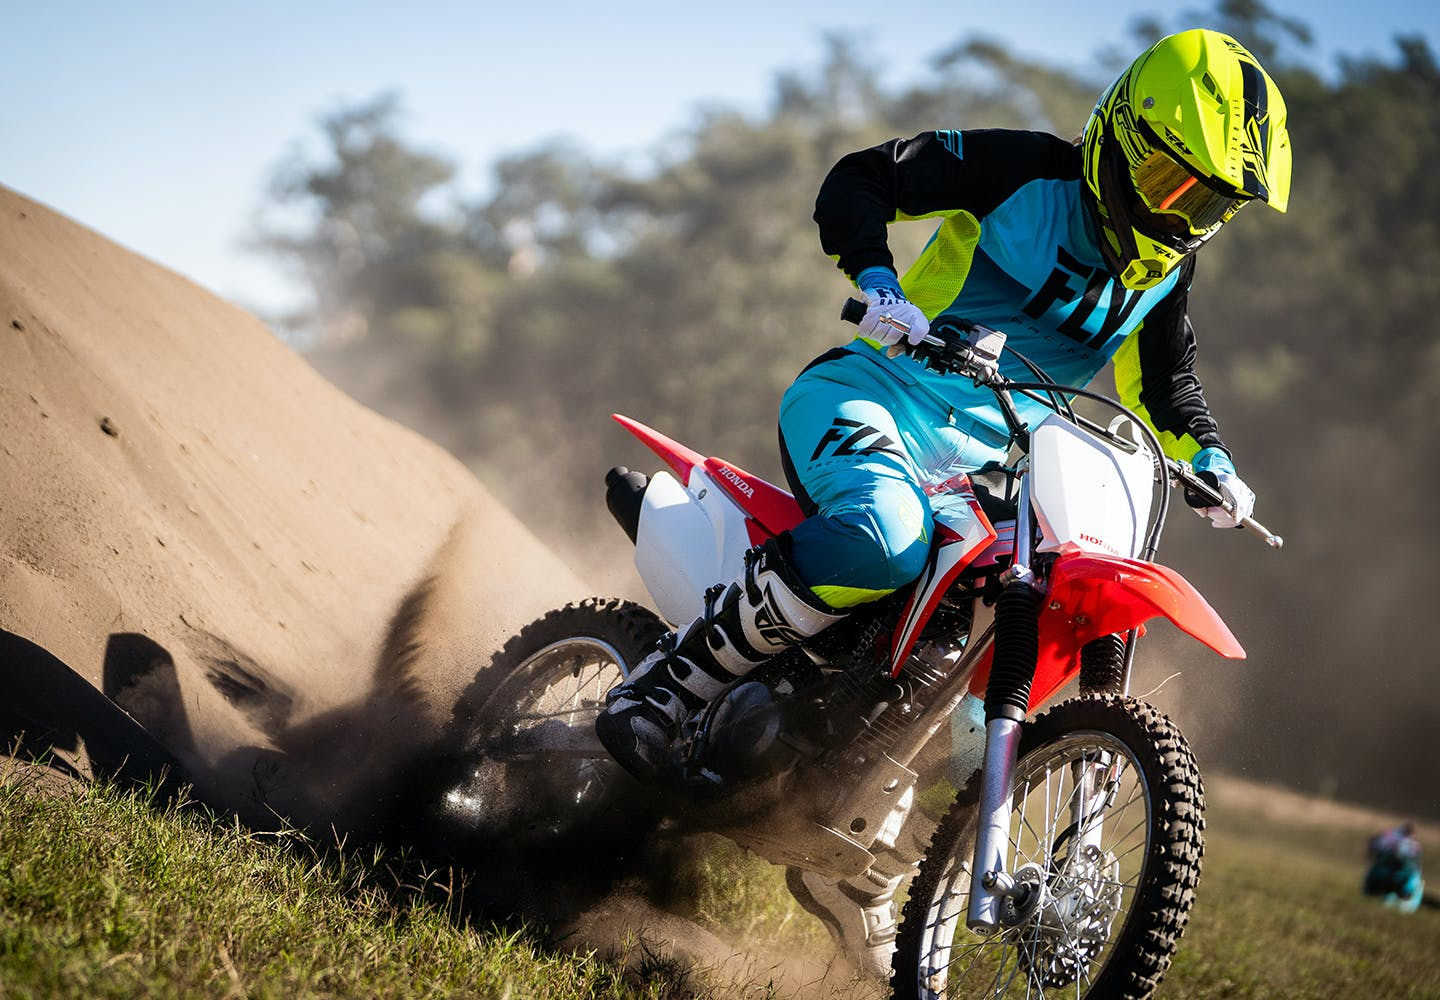 Honda CRF125F in extreme red colour on off road track